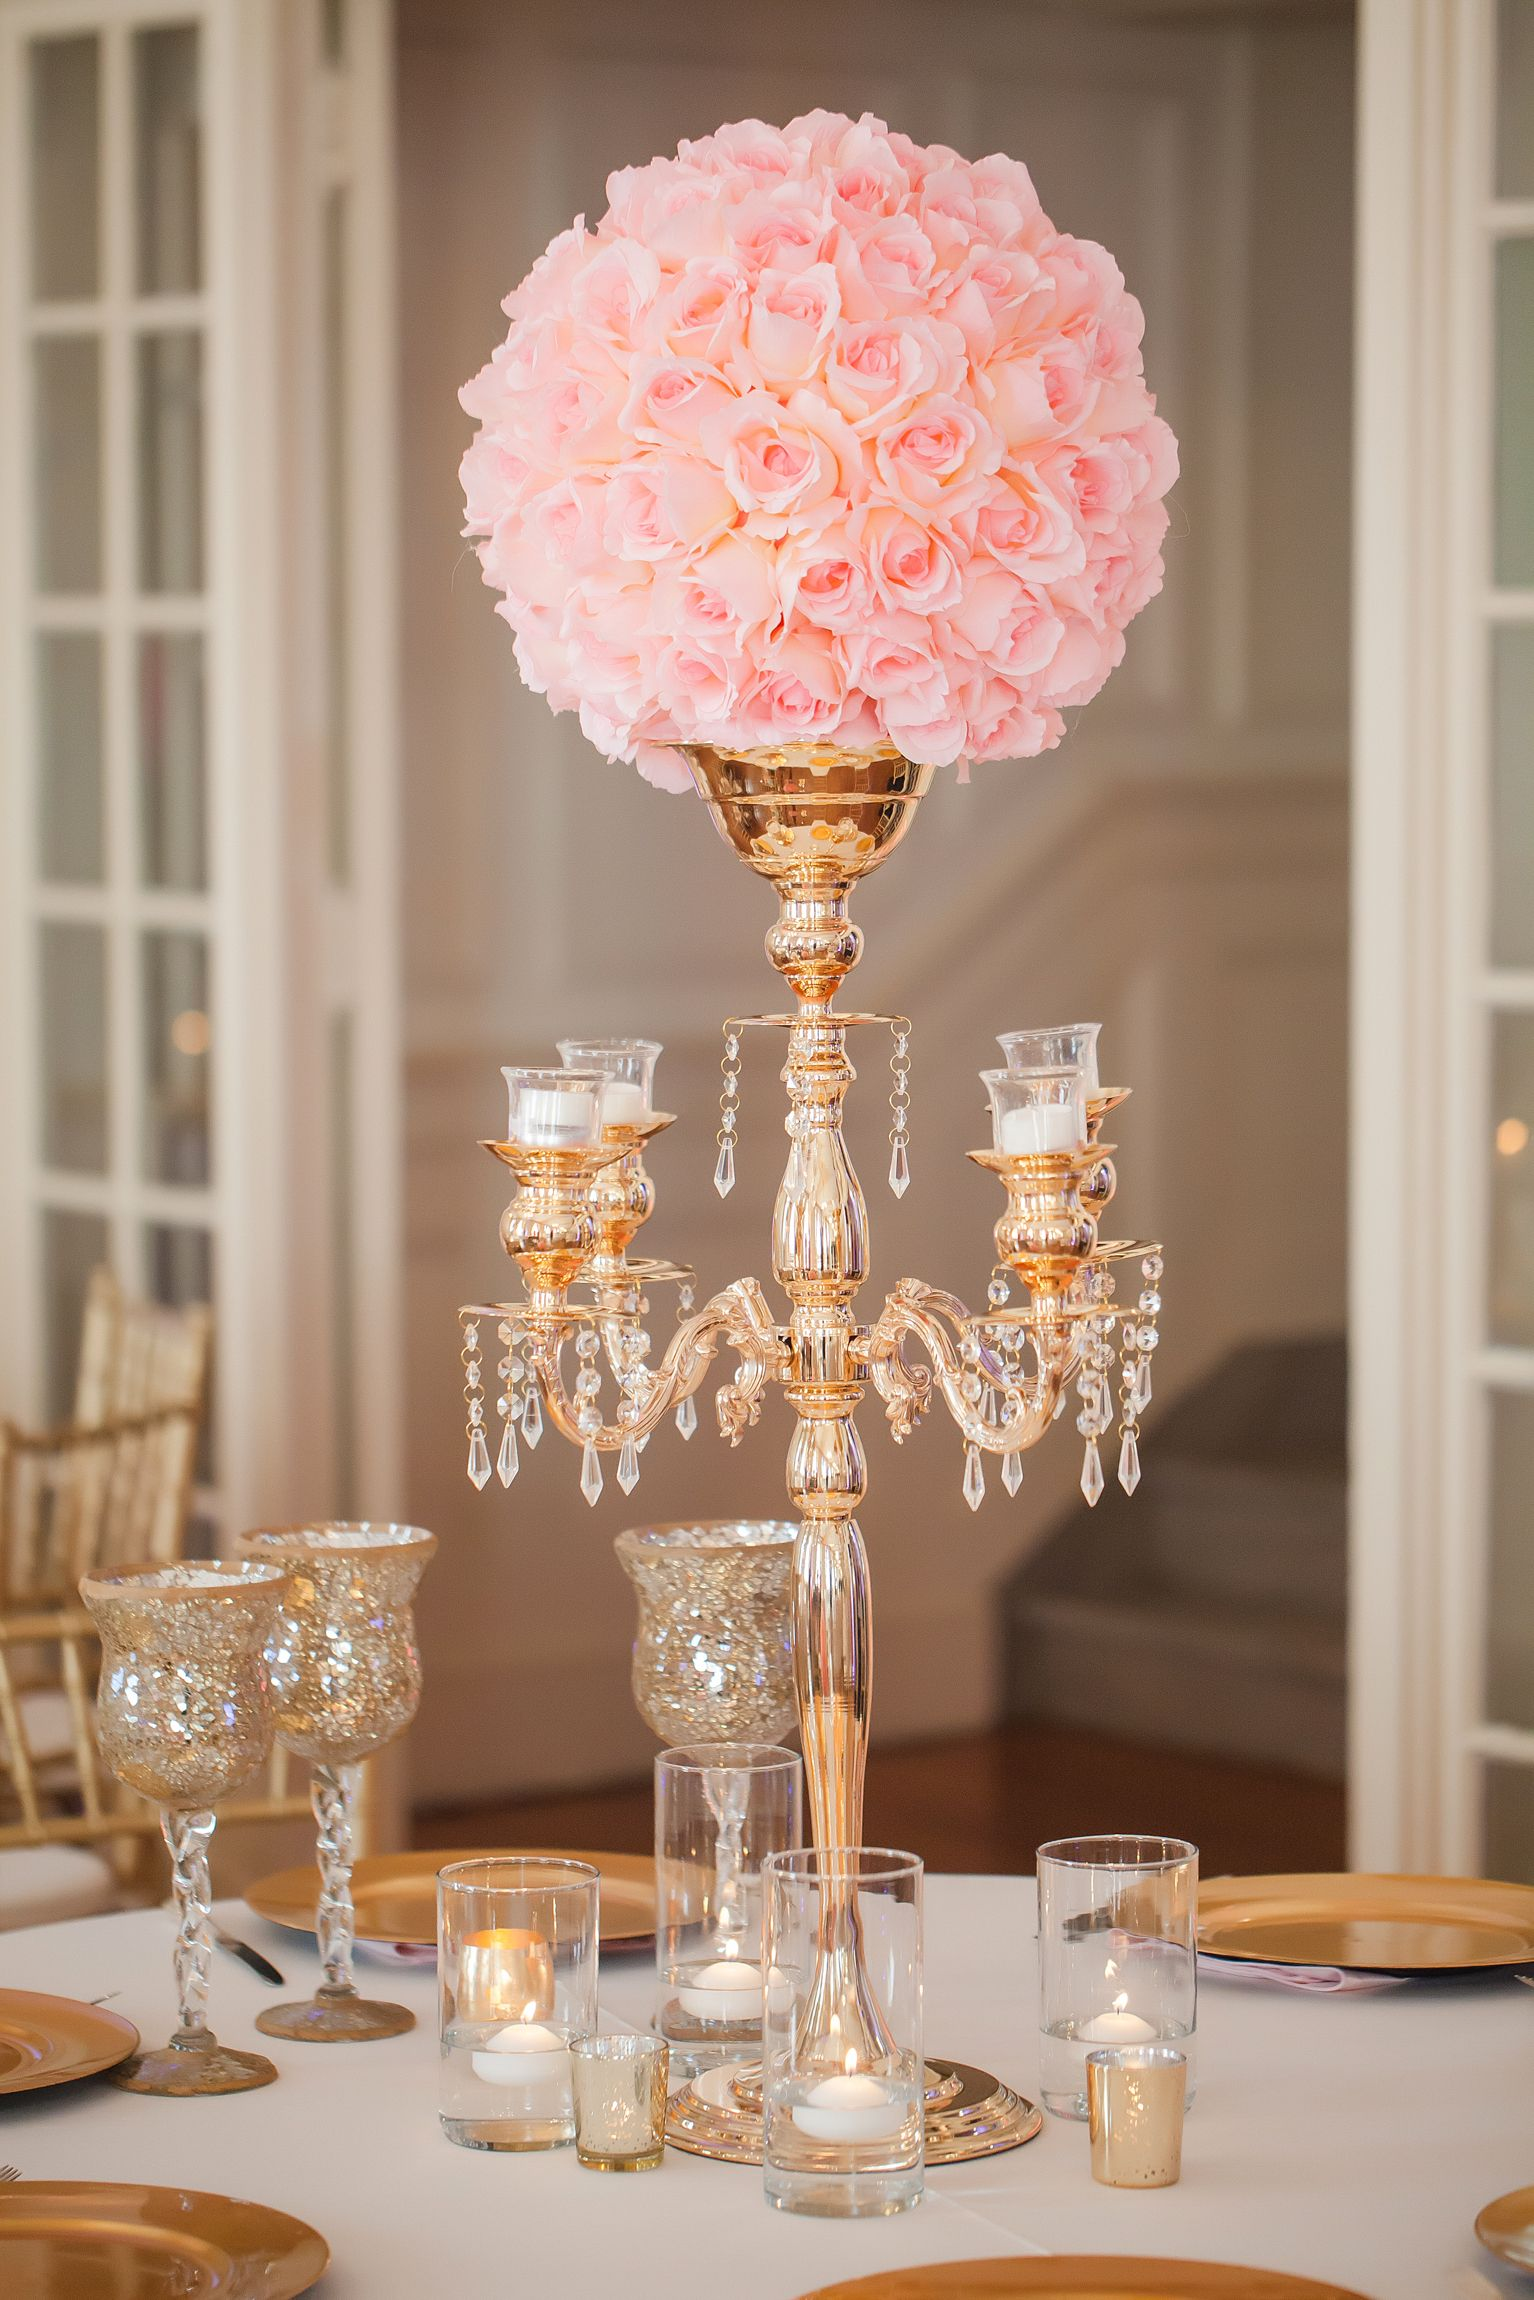 Rose Centerpieces For Tables : Gold candelabra pink rose wedding reception centerpiece